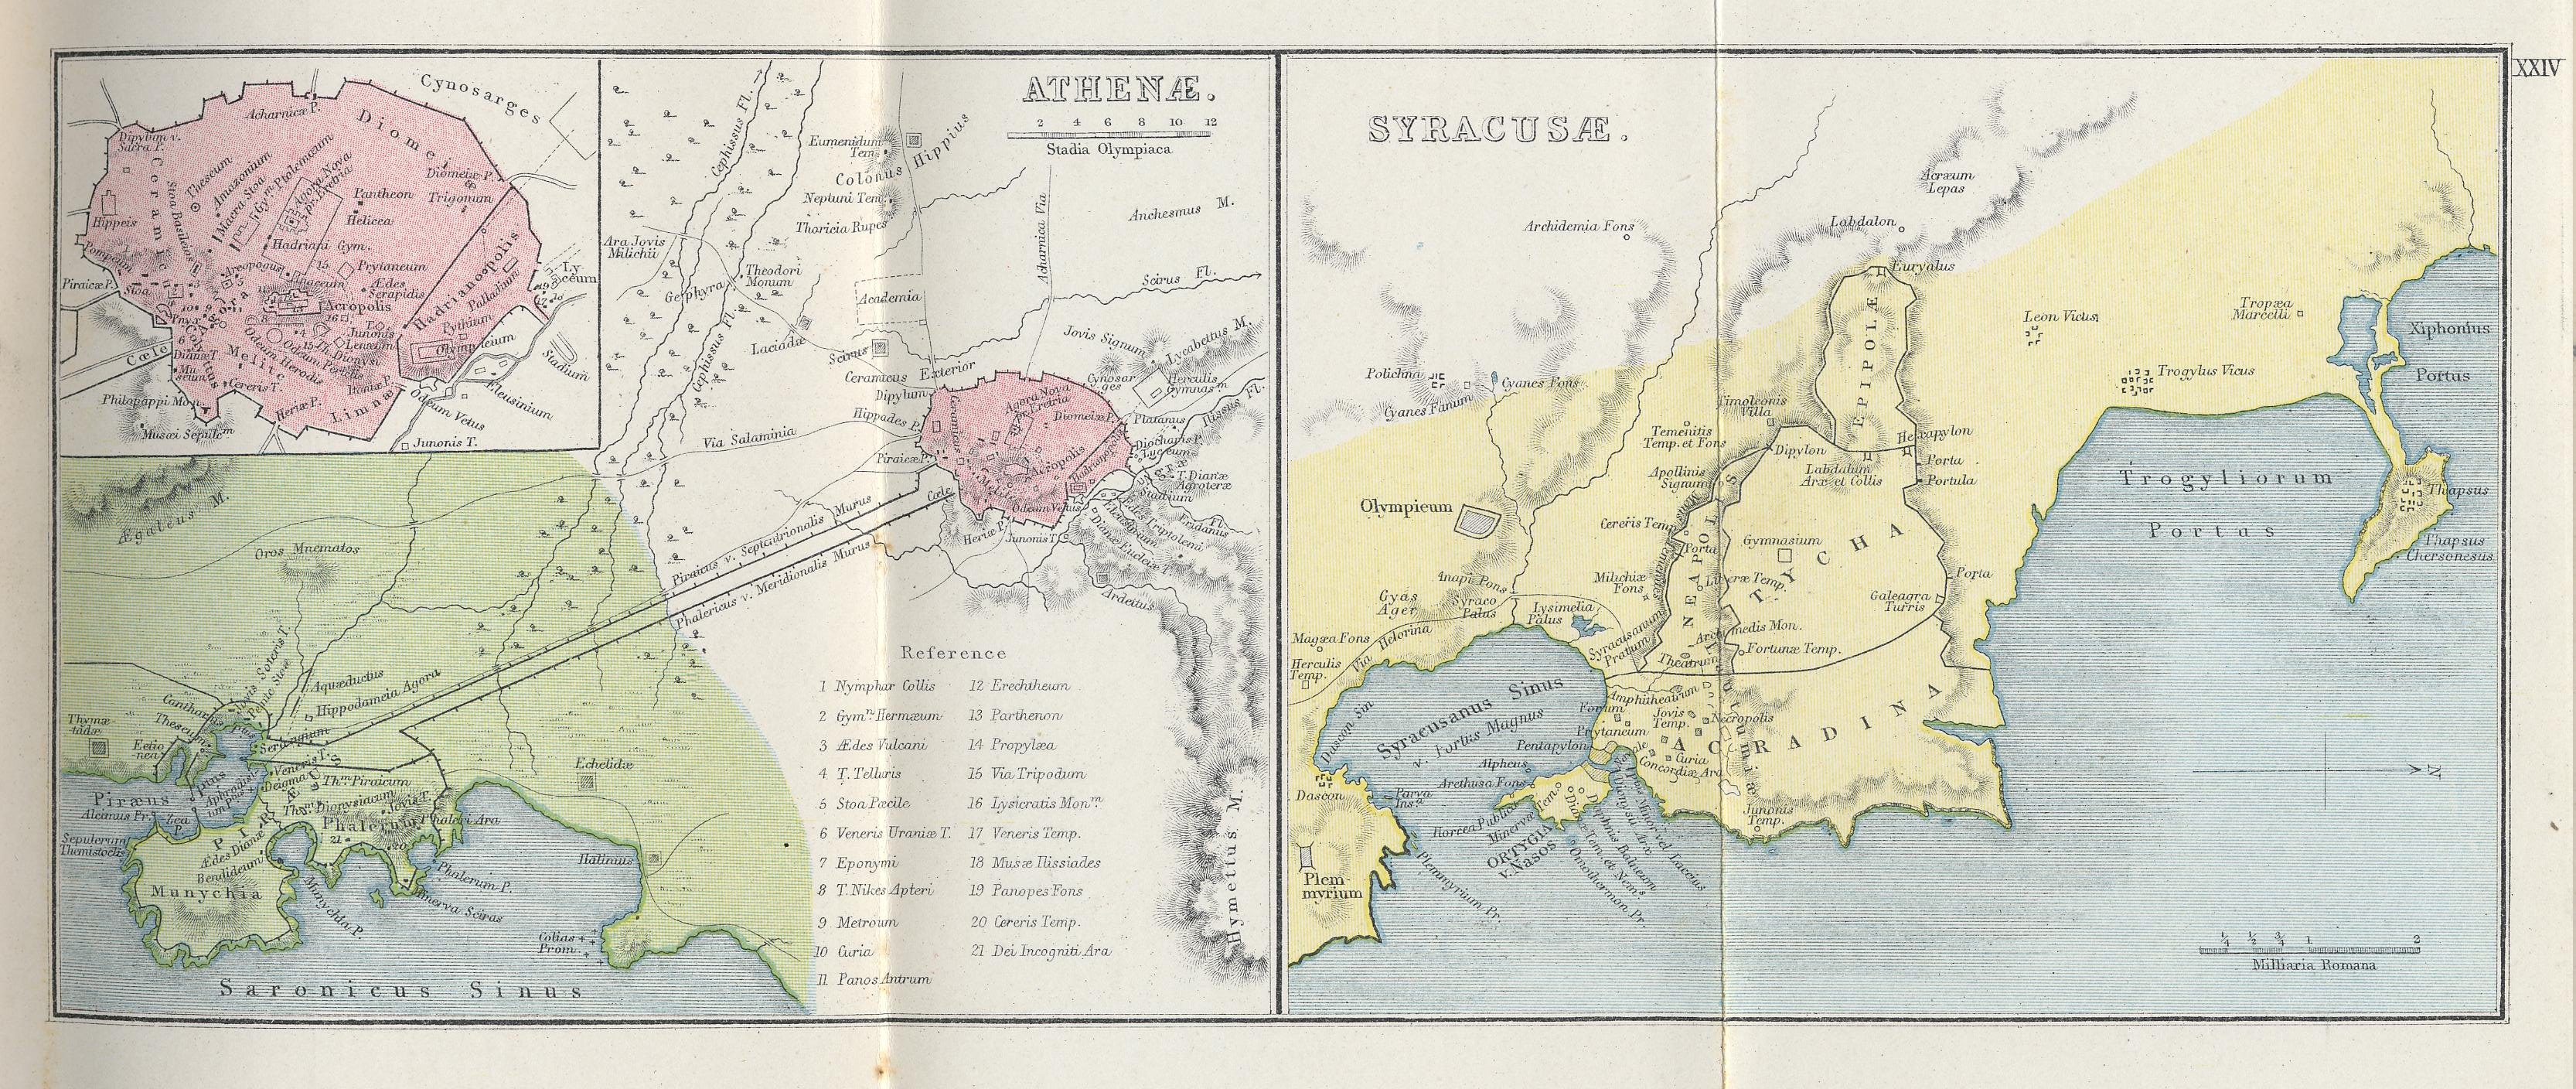 Map of Athens and Syracuse 70 BC - AD 180 with inset of the Athenian Acropolis